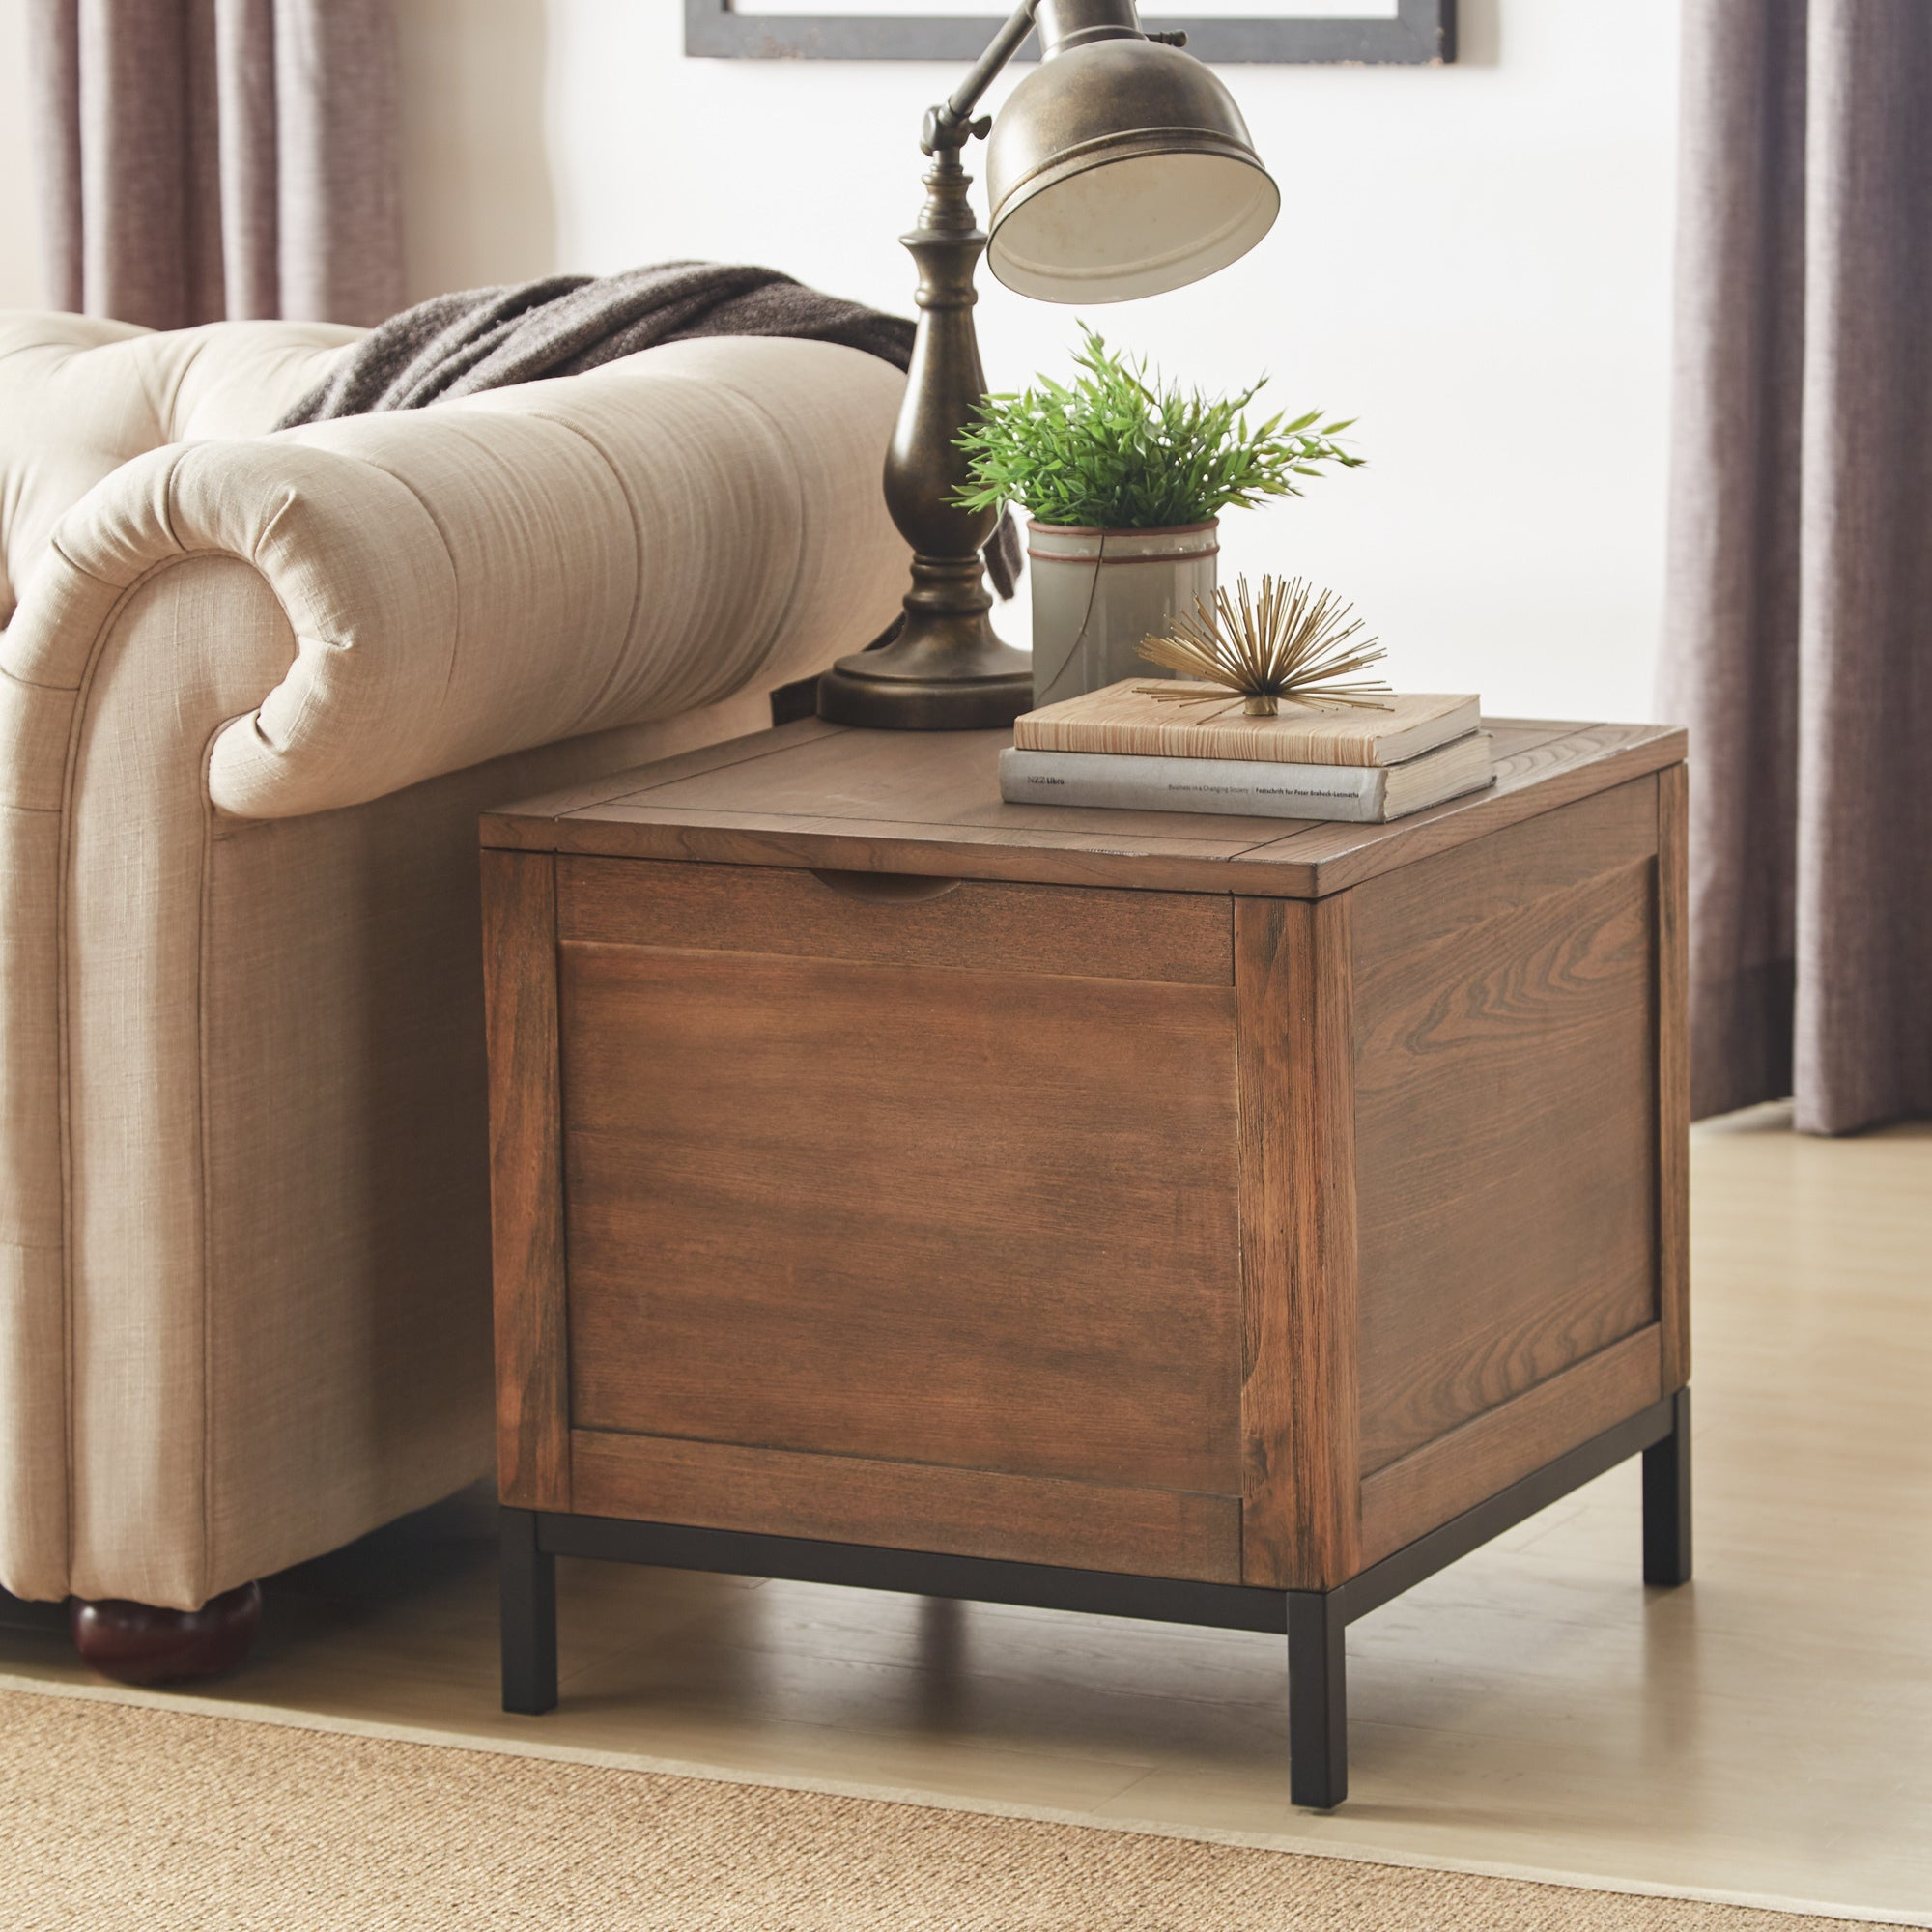 Shop Shay Storage Trunk End Table With Removeable Tray By INSPIRE Q Artisan    On Sale   Free Shipping Today   Overstock.com   22408055